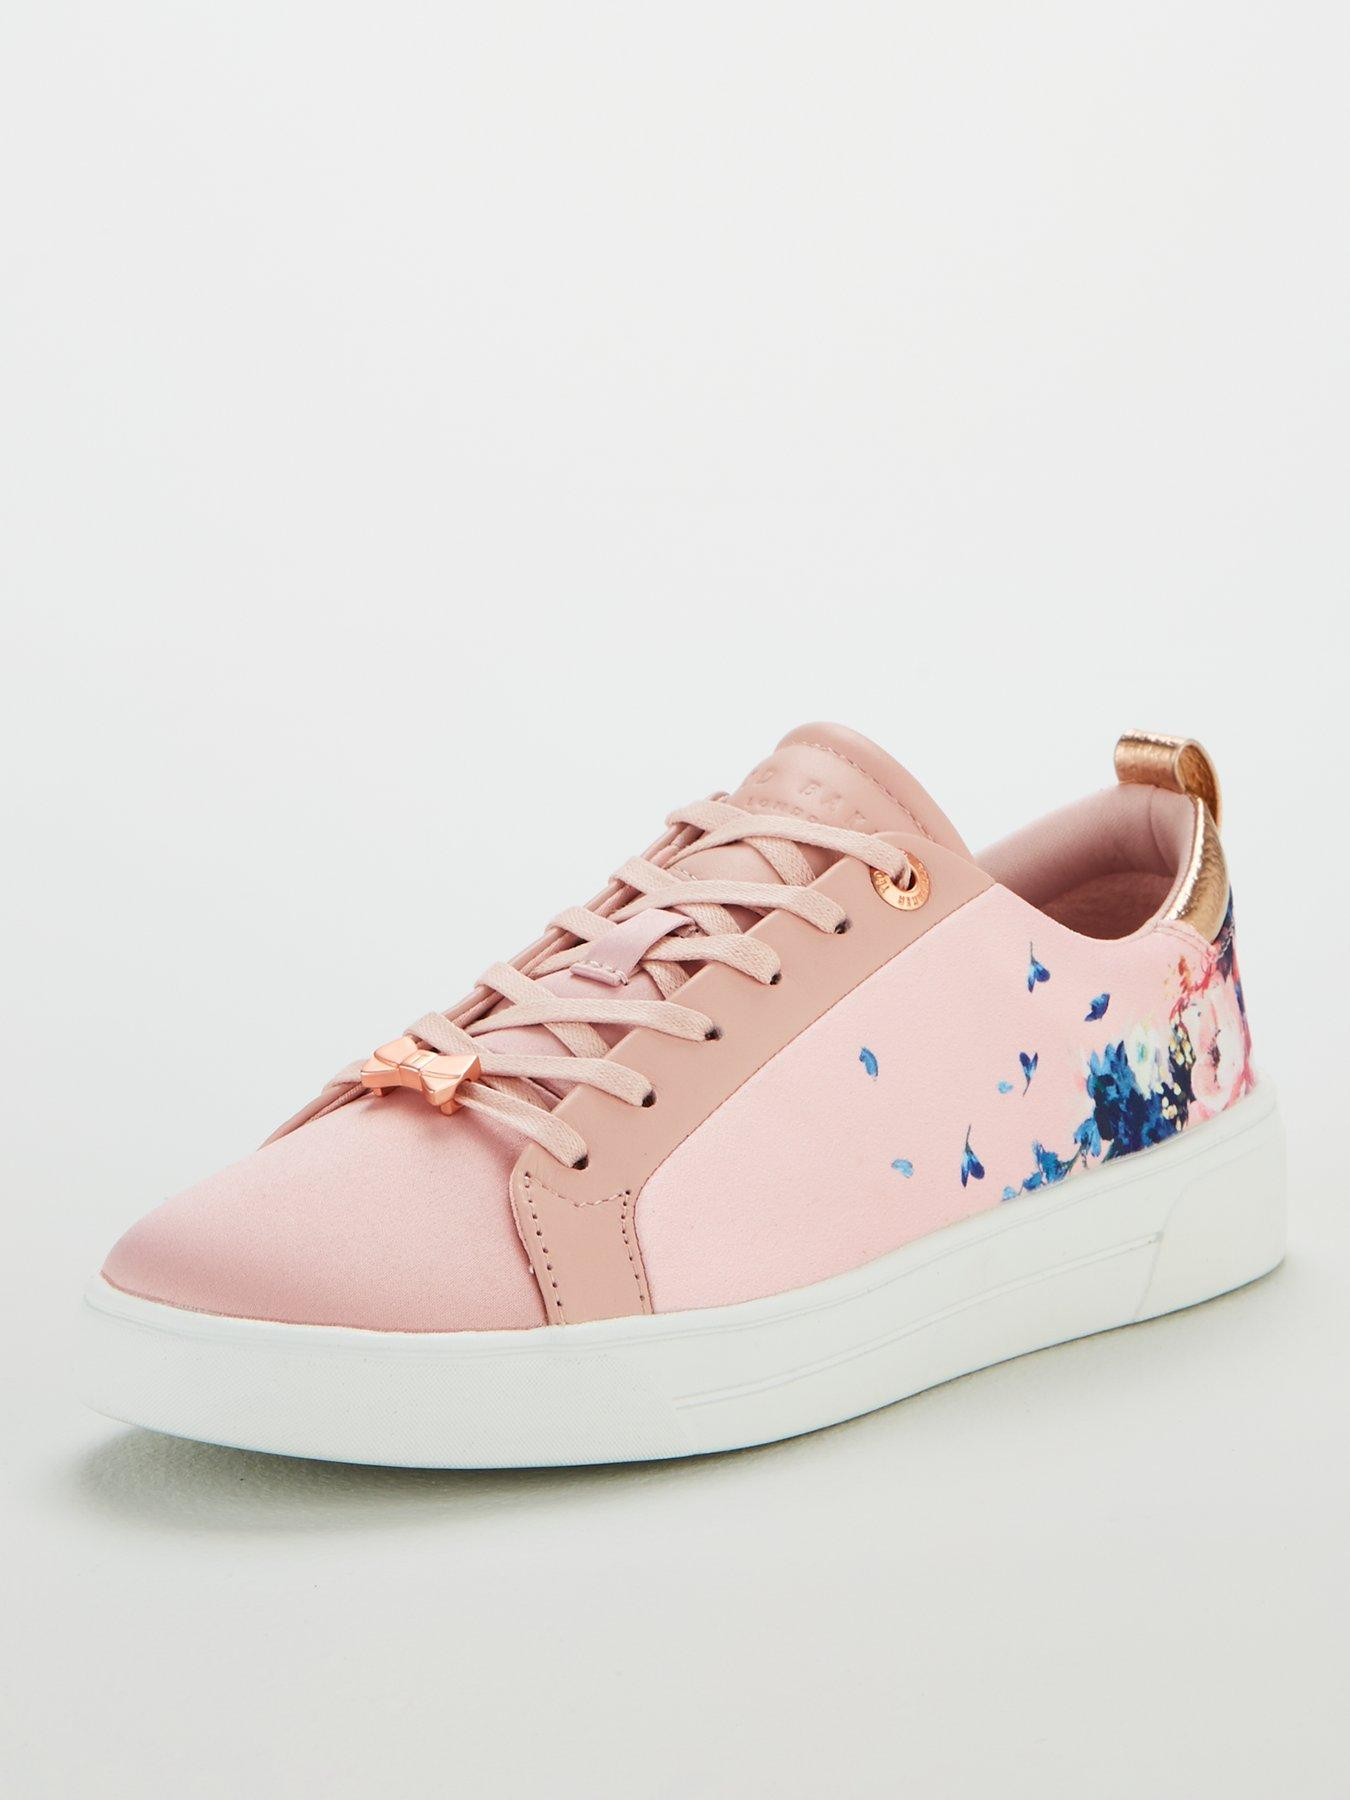 Baker Trainers Ted Jymina Pinkvery uk co nZNwPOk80X